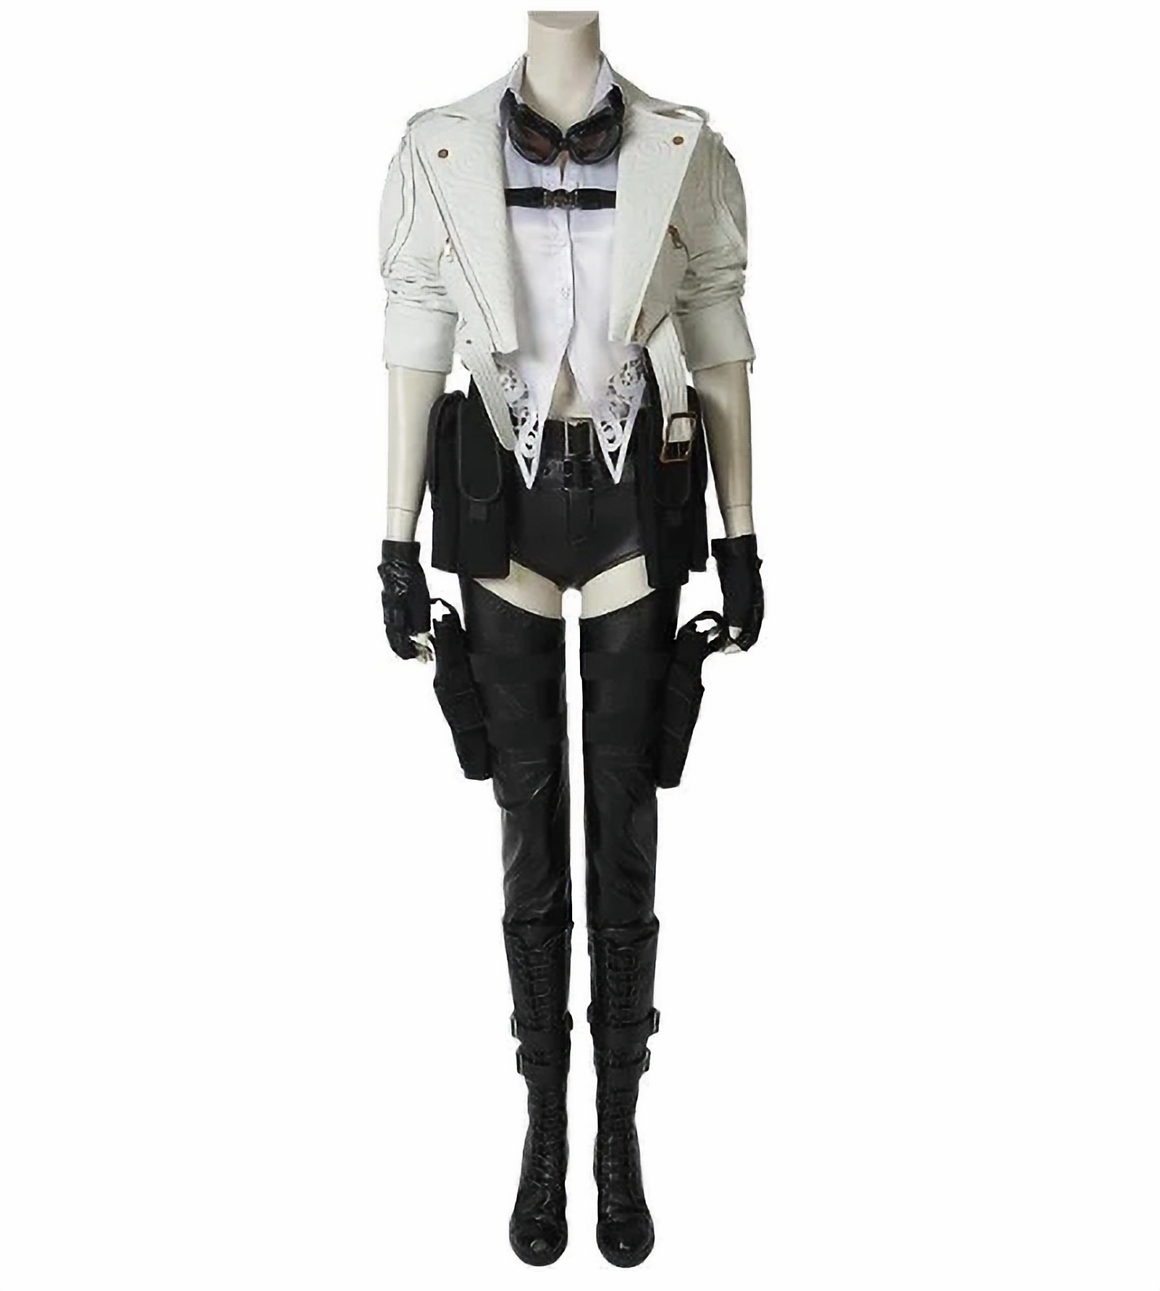 Lady Costume Cosplay Devil May Cry 5 Outfit Full Set